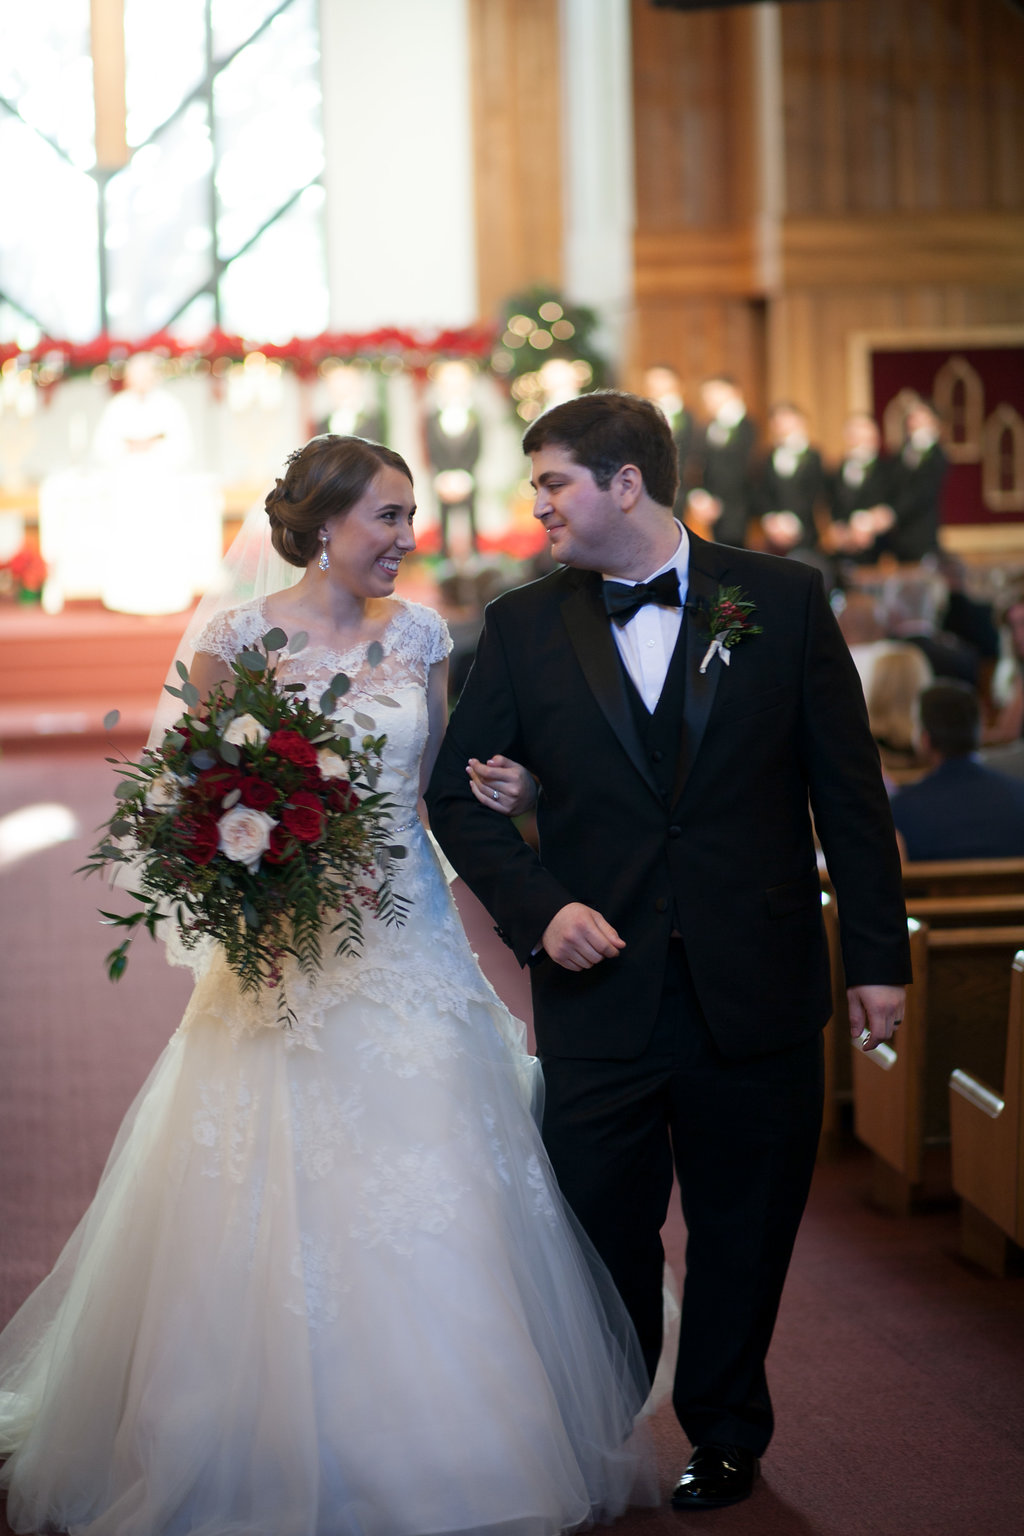 Walking down the aisle as husband and wife, St. Luke's United Methodist